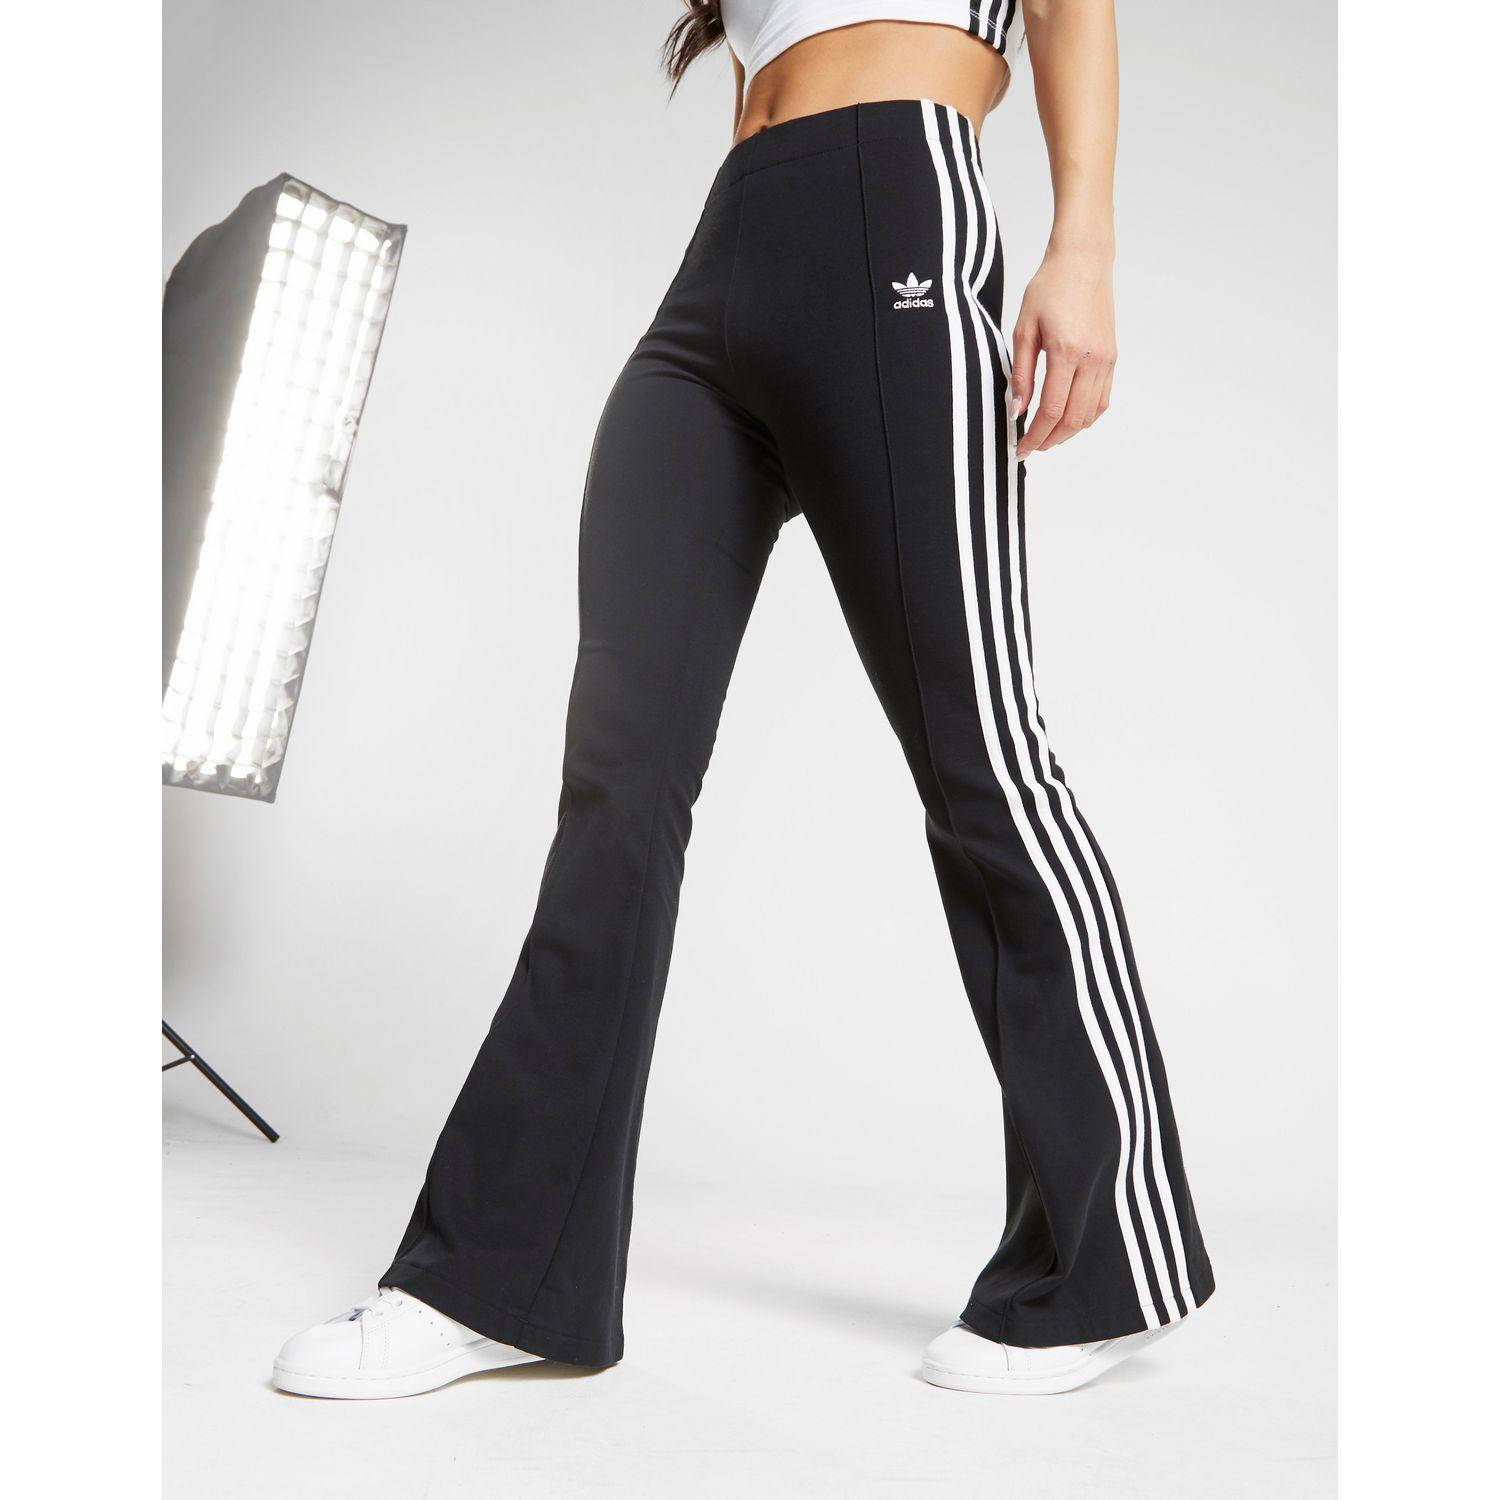 limited style top-rated official 2019 original Adidas Originals Black 3-stripes Flared Track Pants